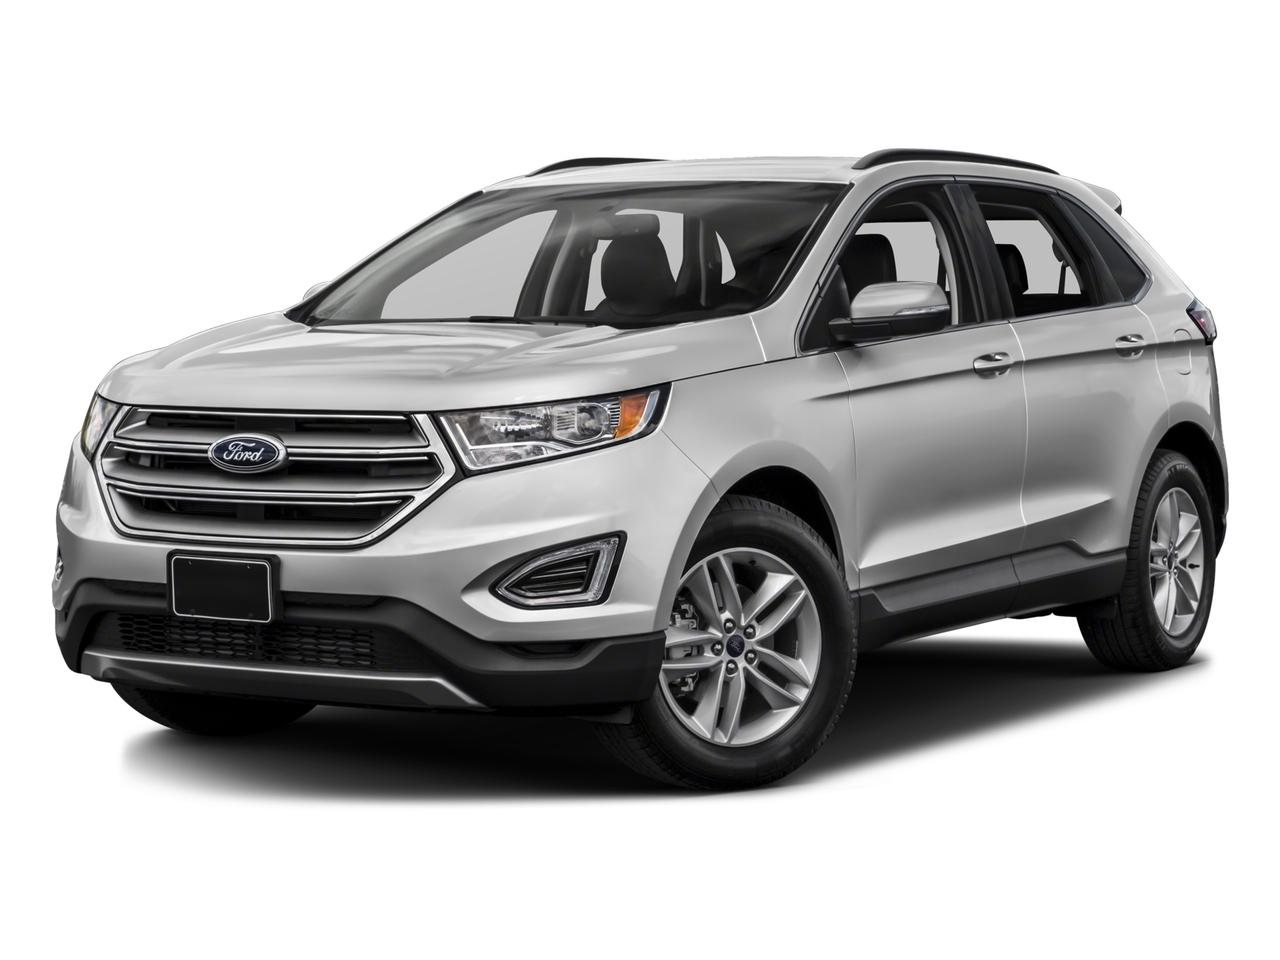 2016 Ford Edge Vehicle Photo in Rockville, MD 20852